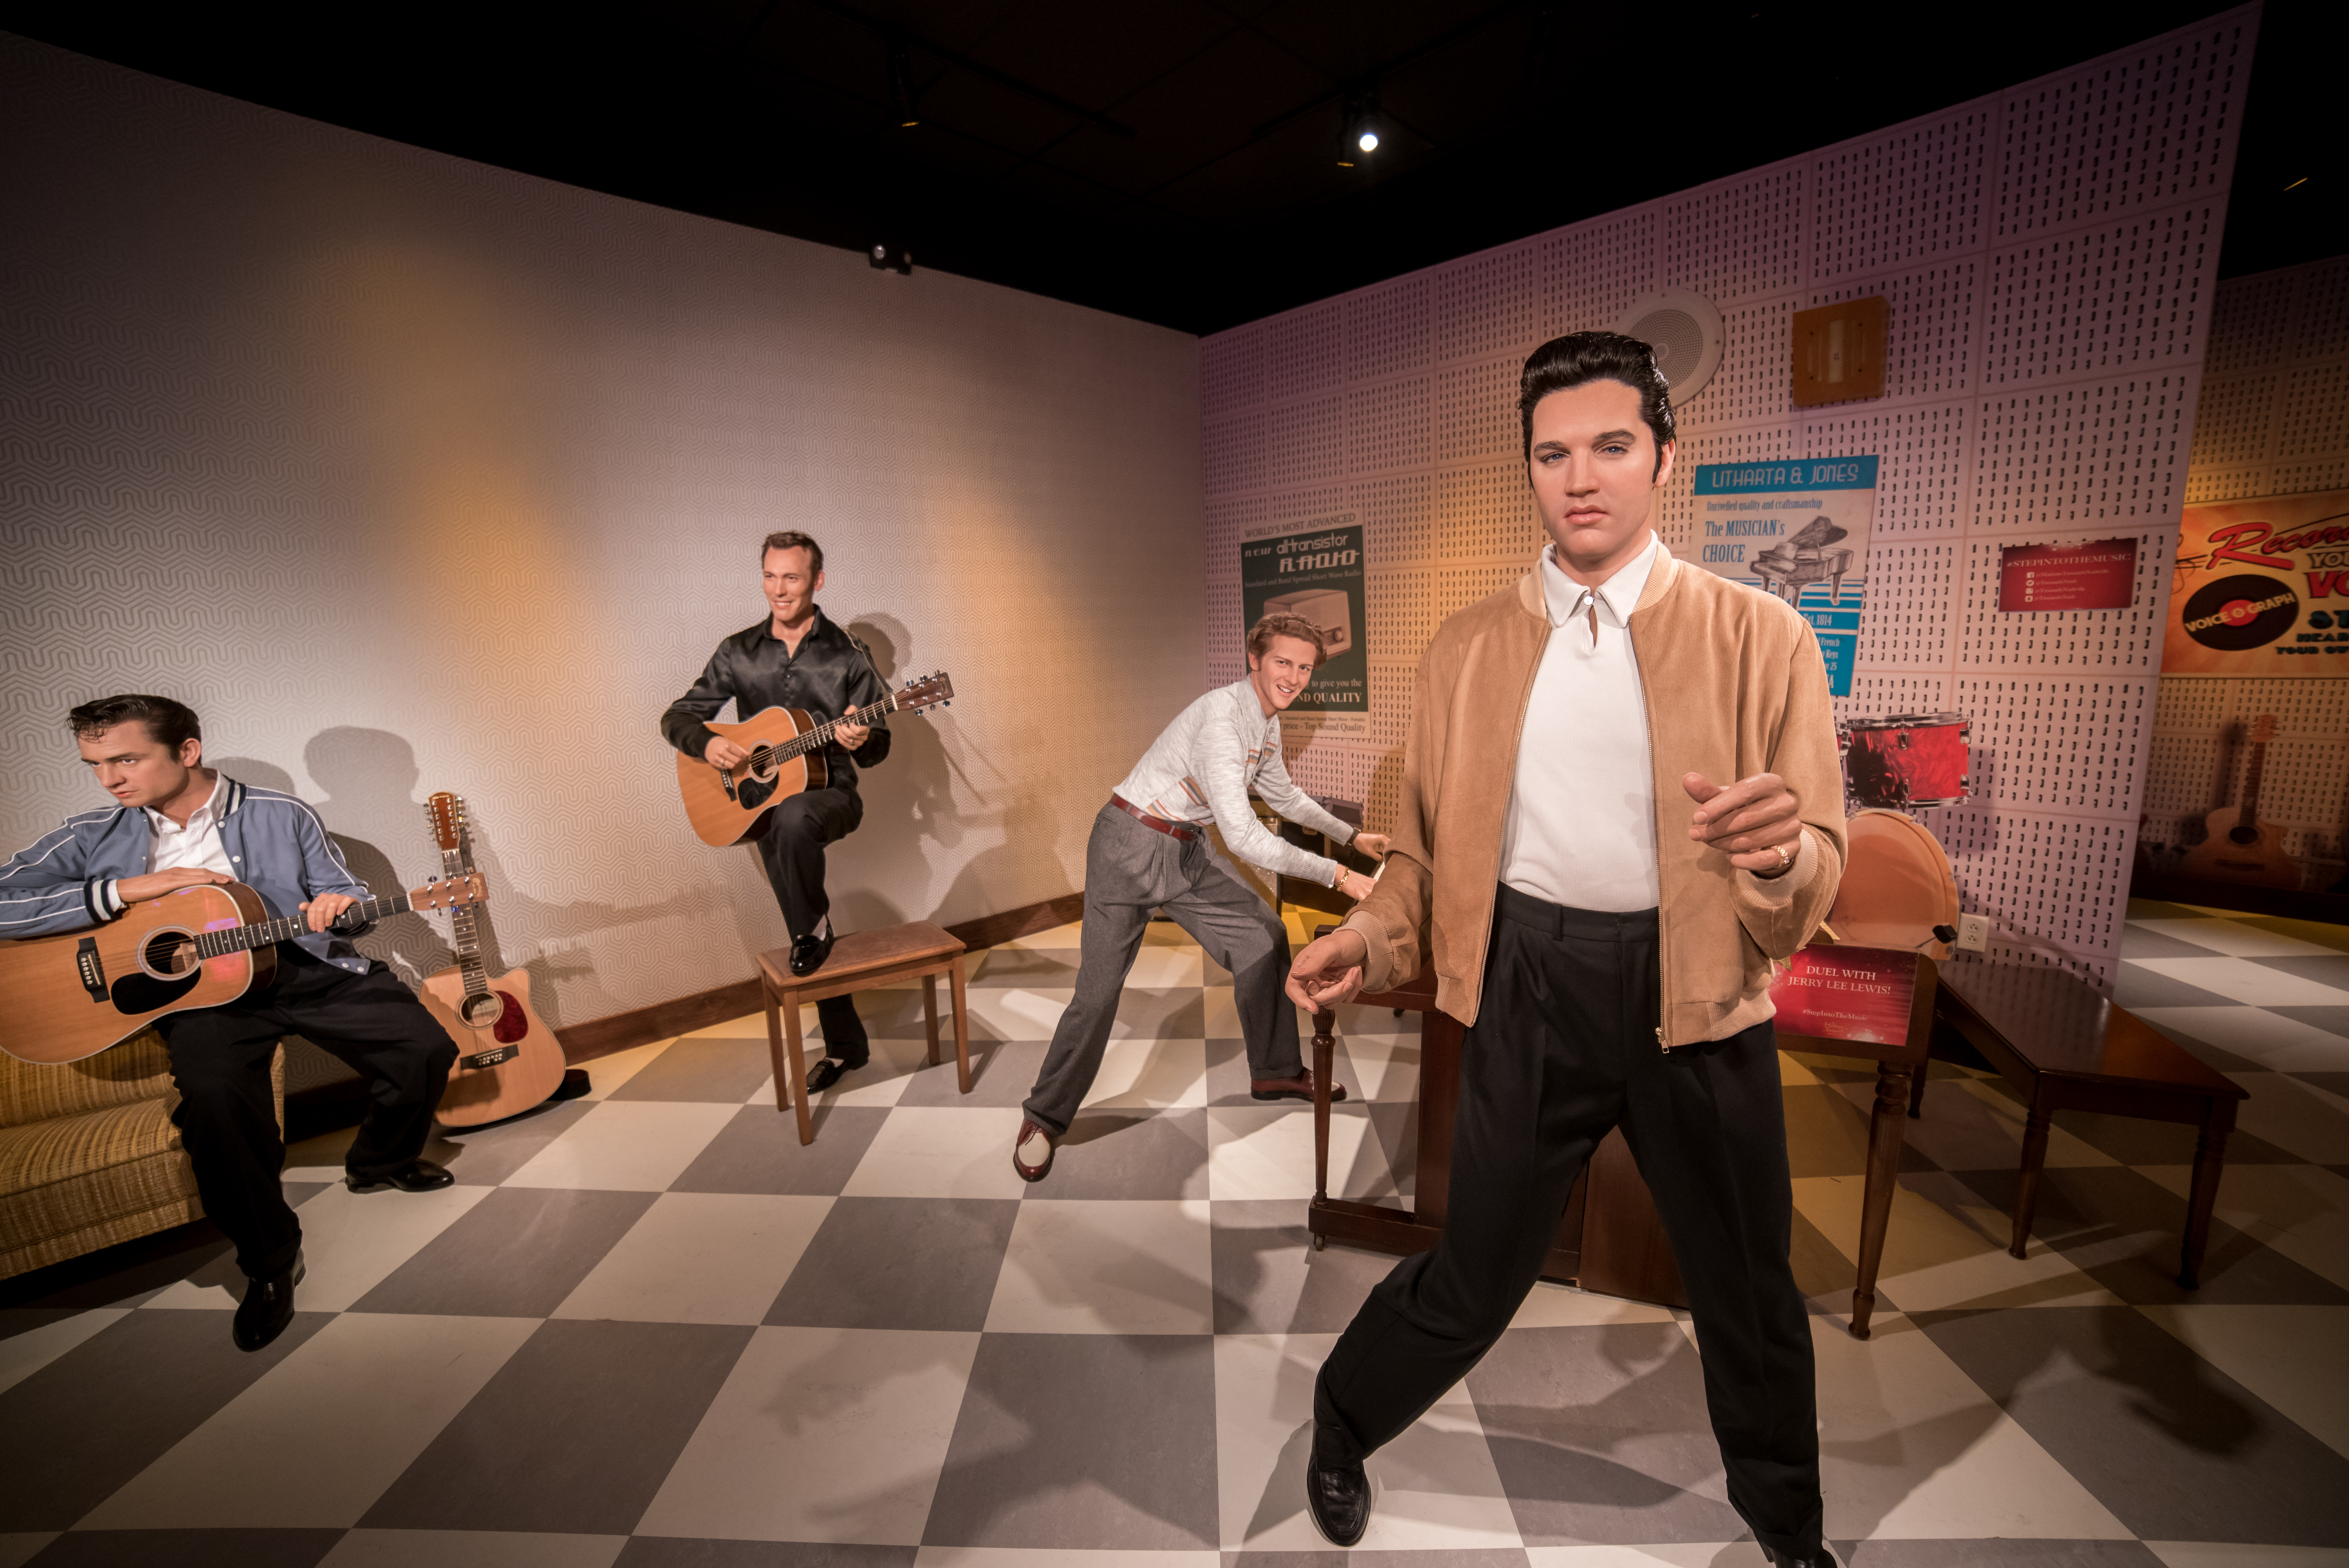 Elvis Presley at Madame Tussauds Nashville